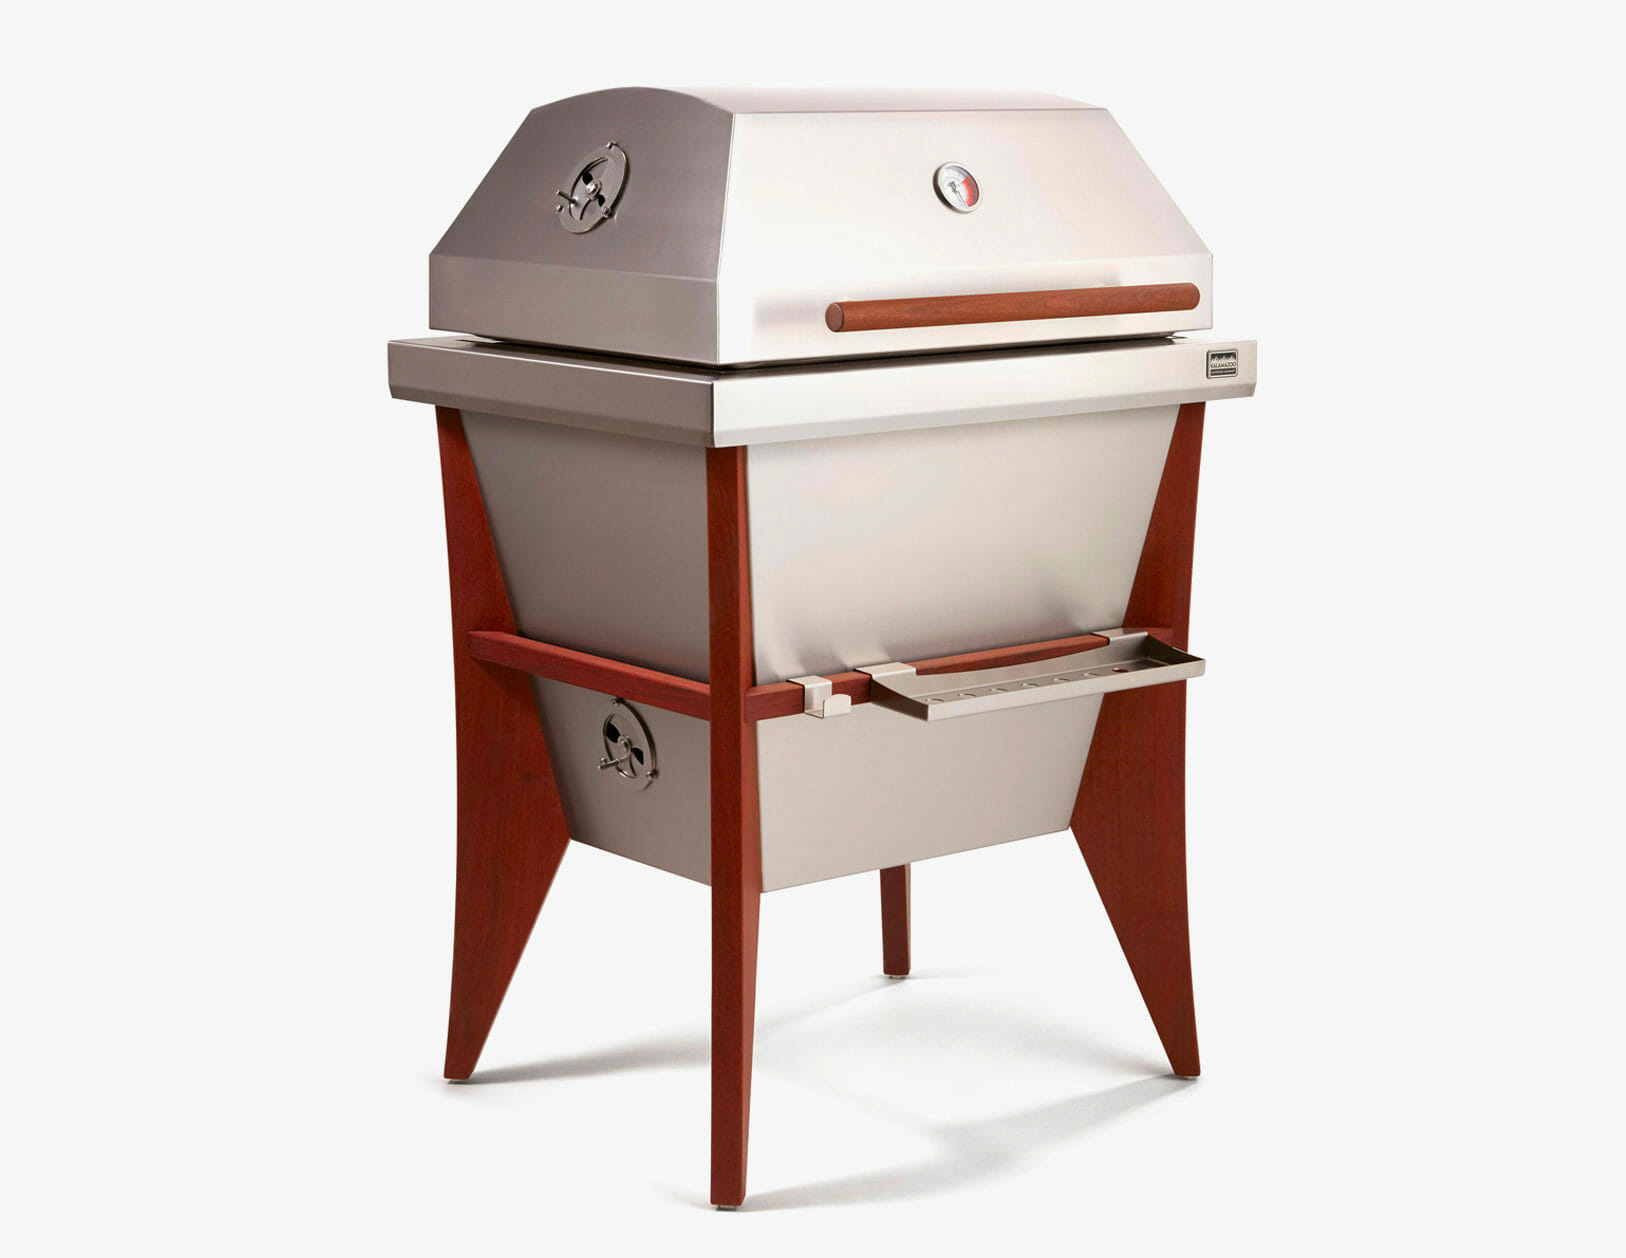 The Shokunin Kamado Grill will Make You a Master at werd.com